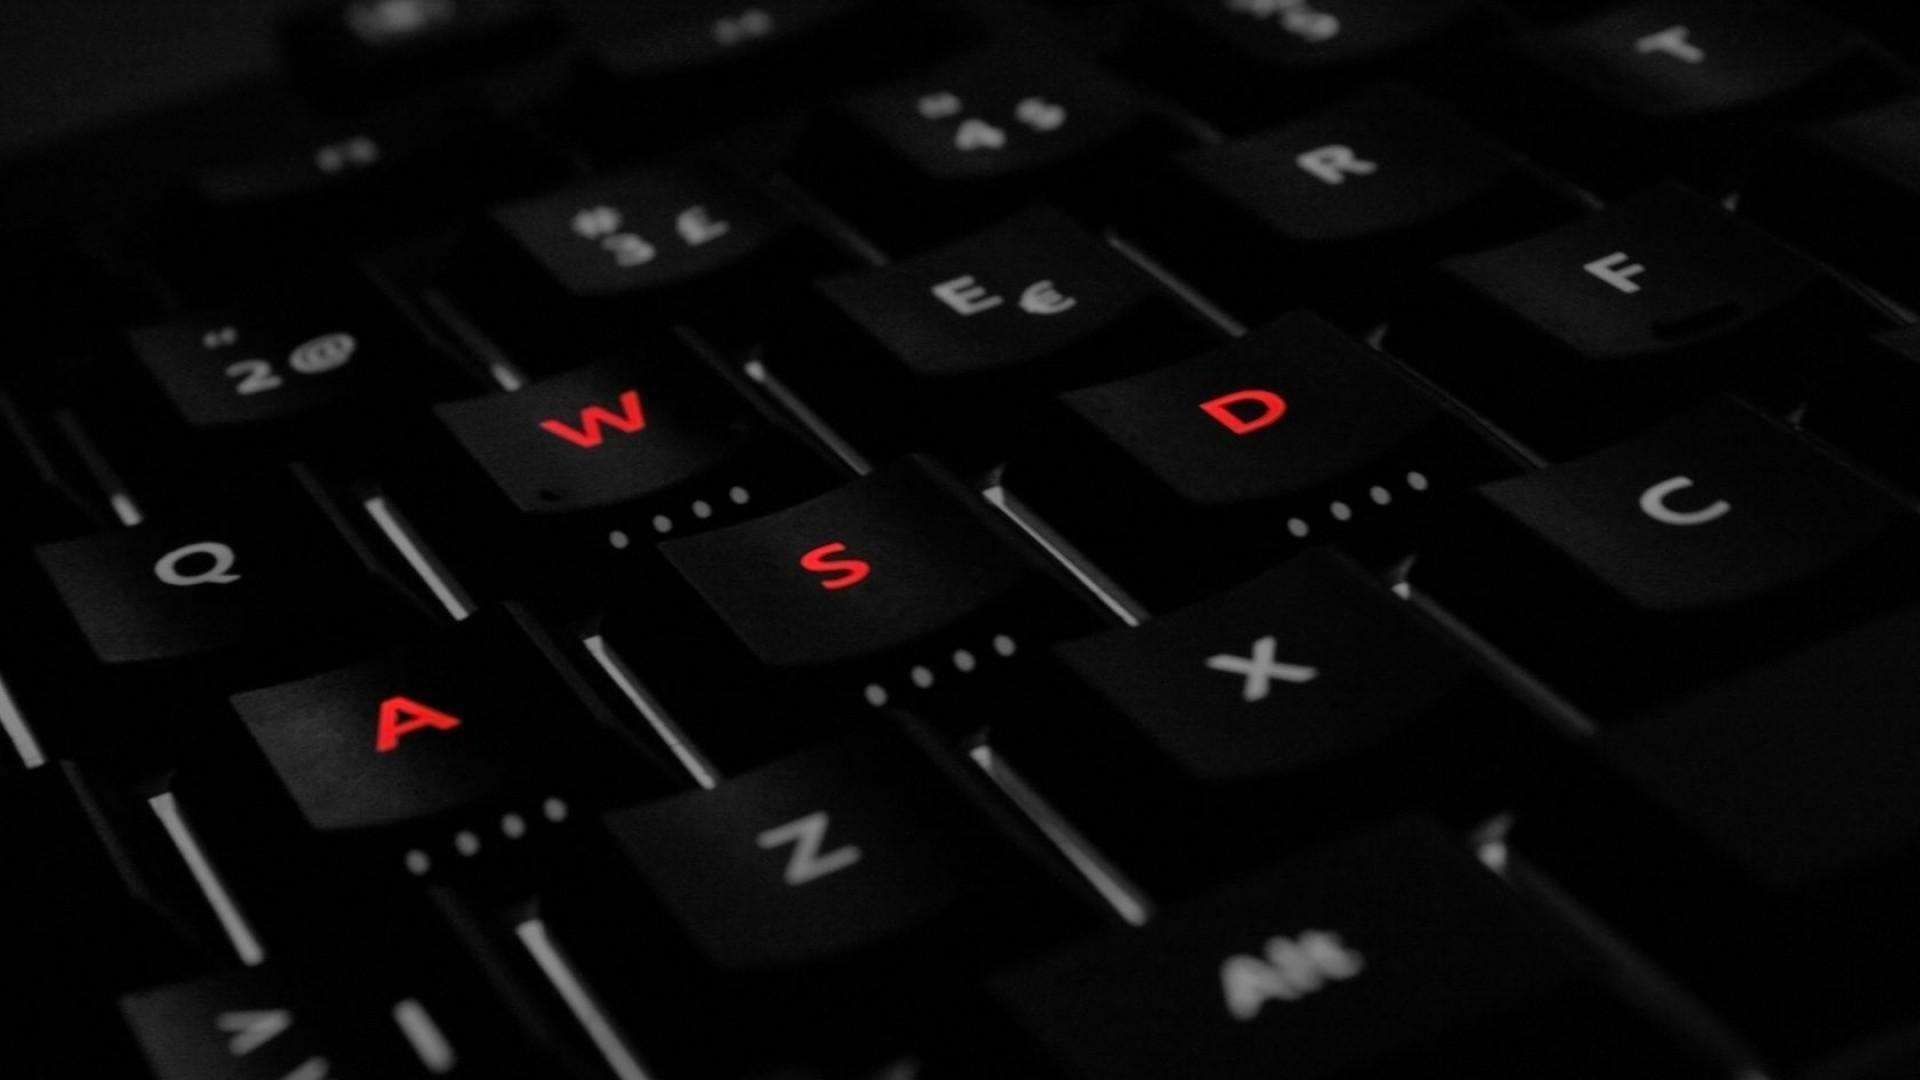 Computer Tech Wallpaper For Android Apk Download